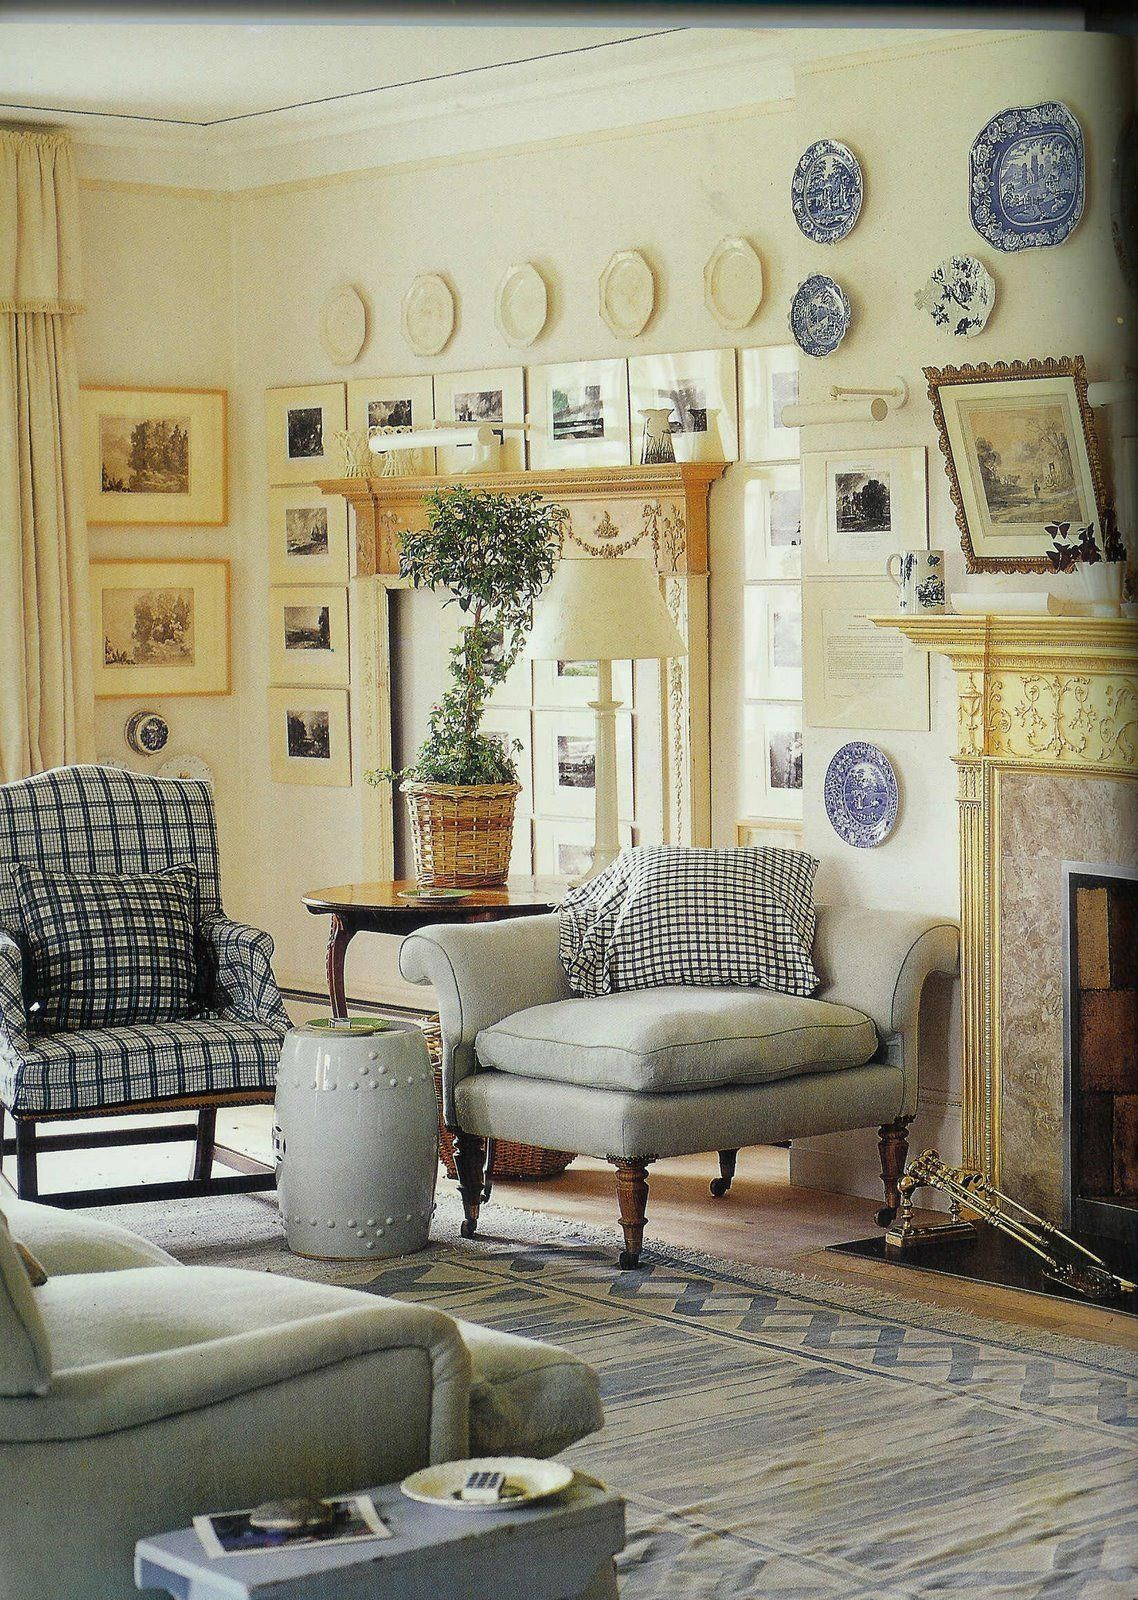 One of my favorite rooms of all - Classic English Country ...